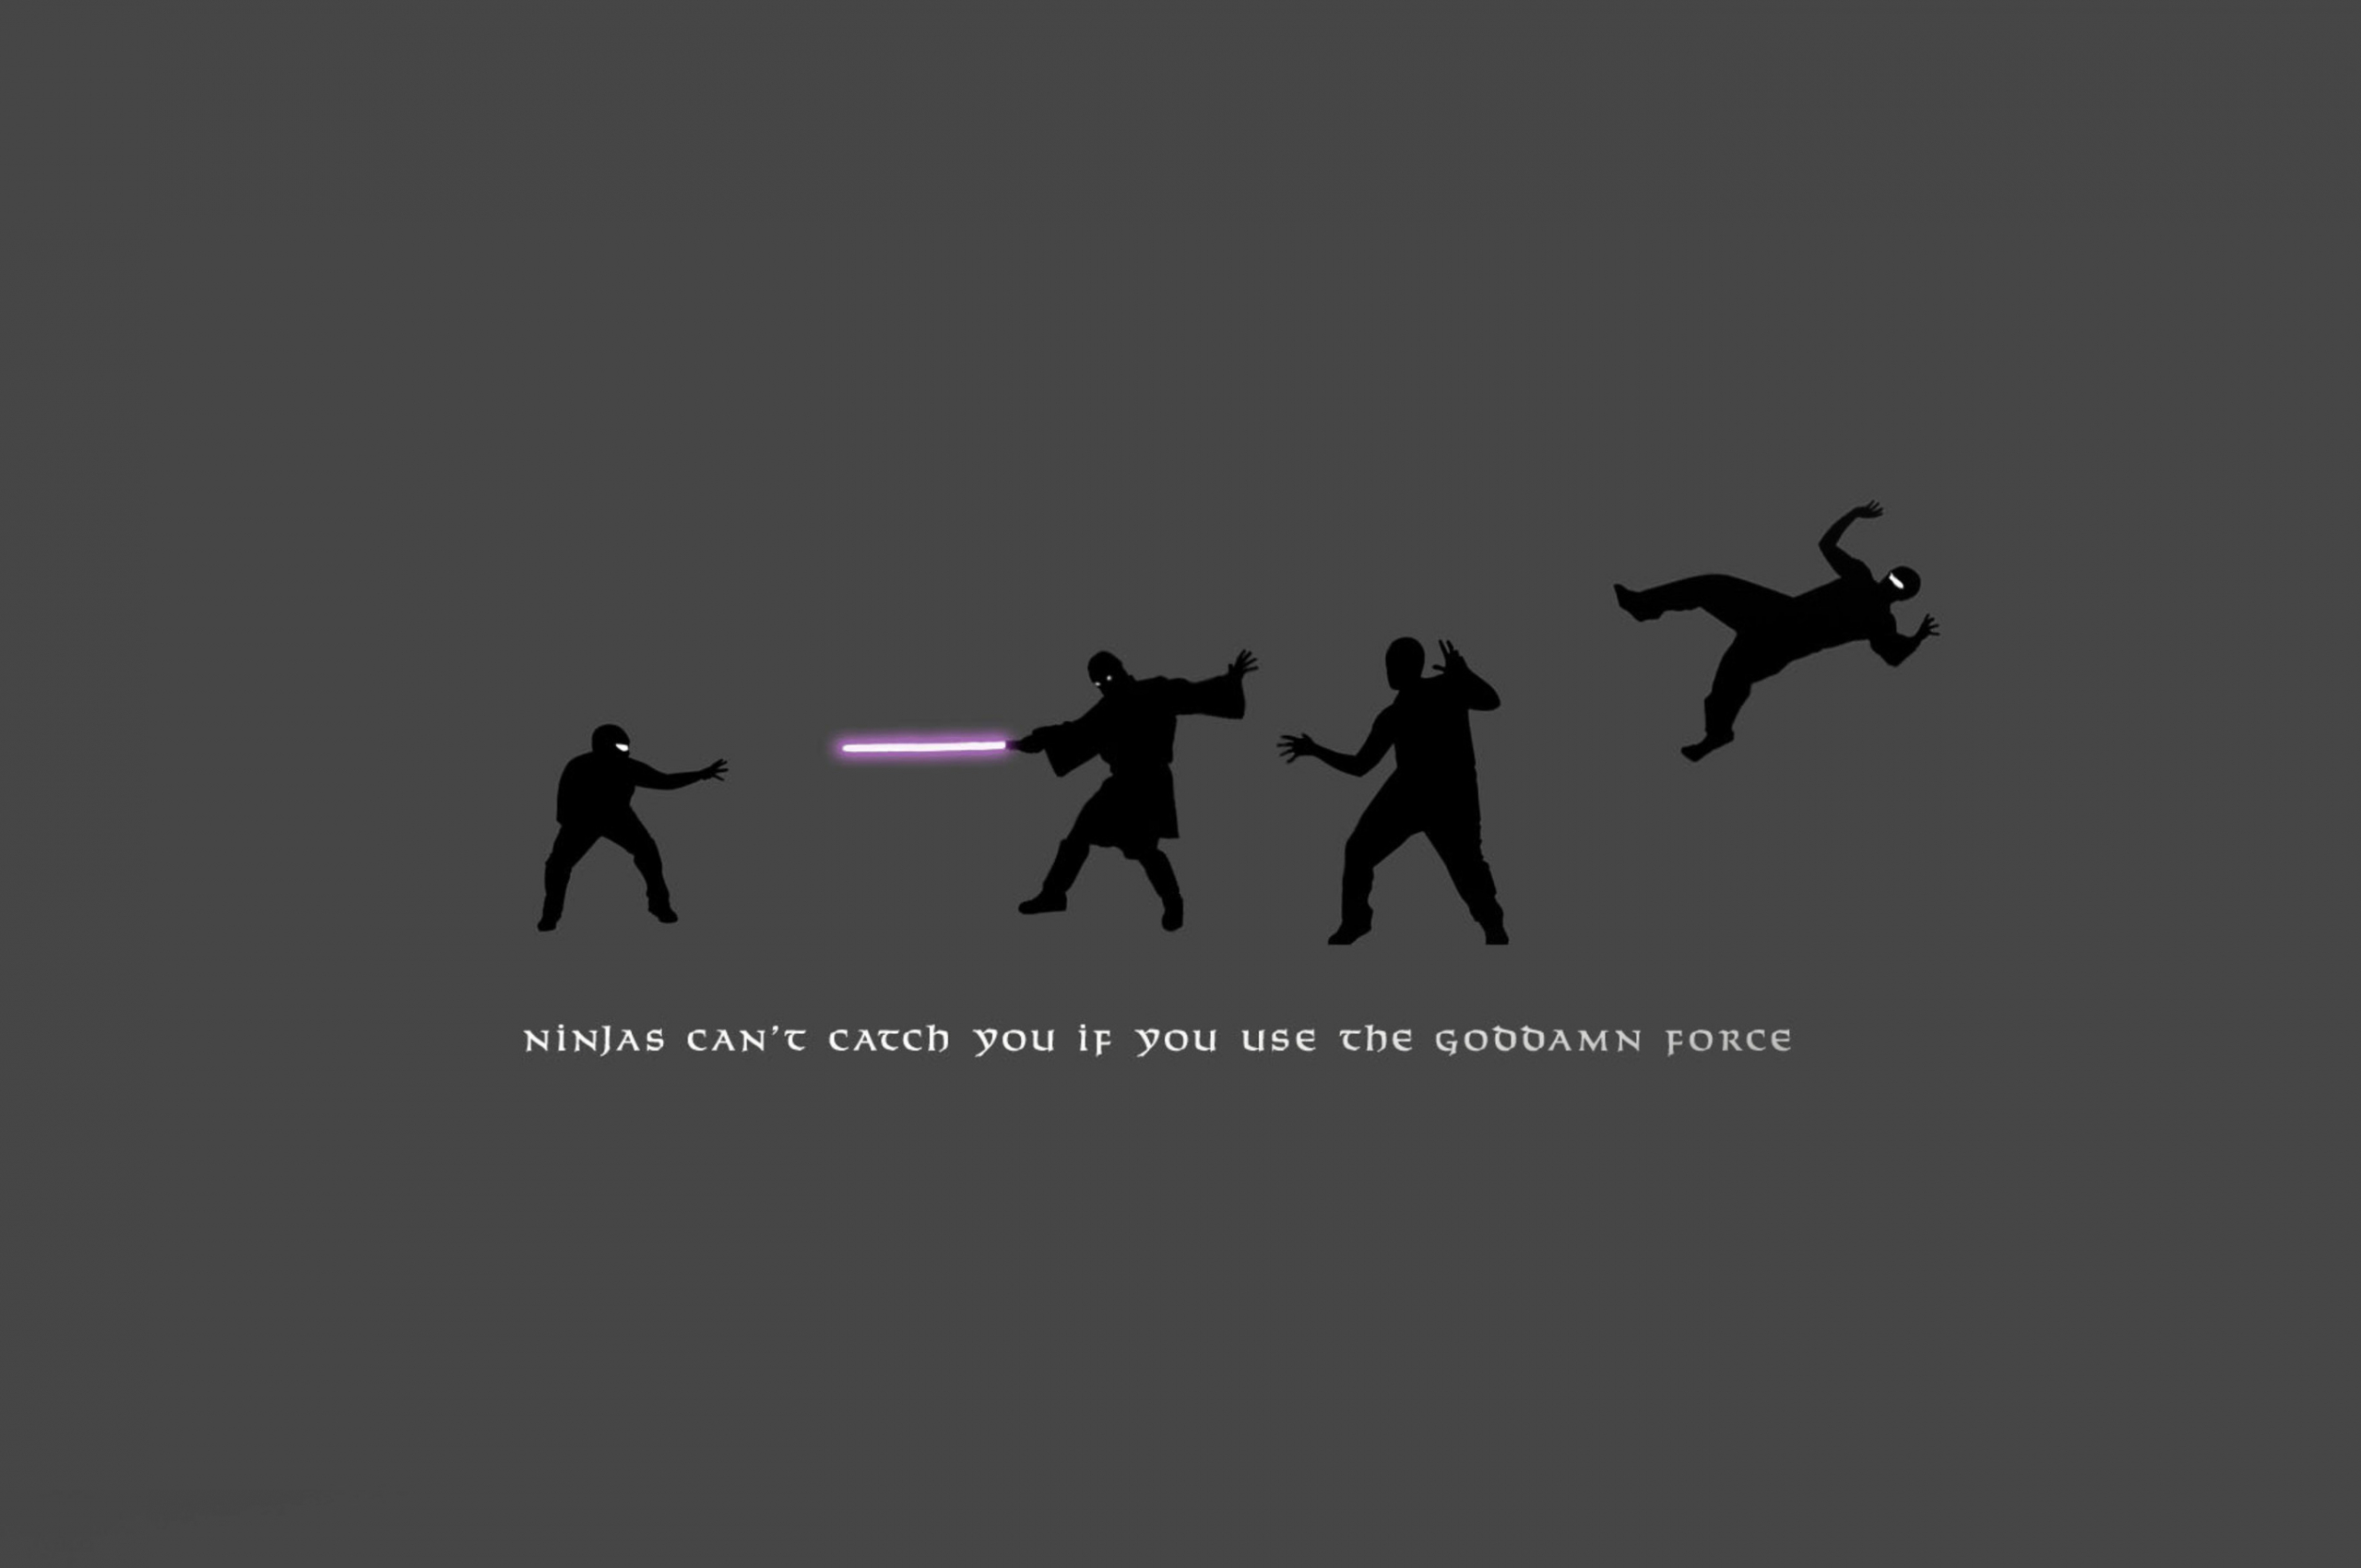 Free Download Wars May The Force Be With You Wallpapers The Art